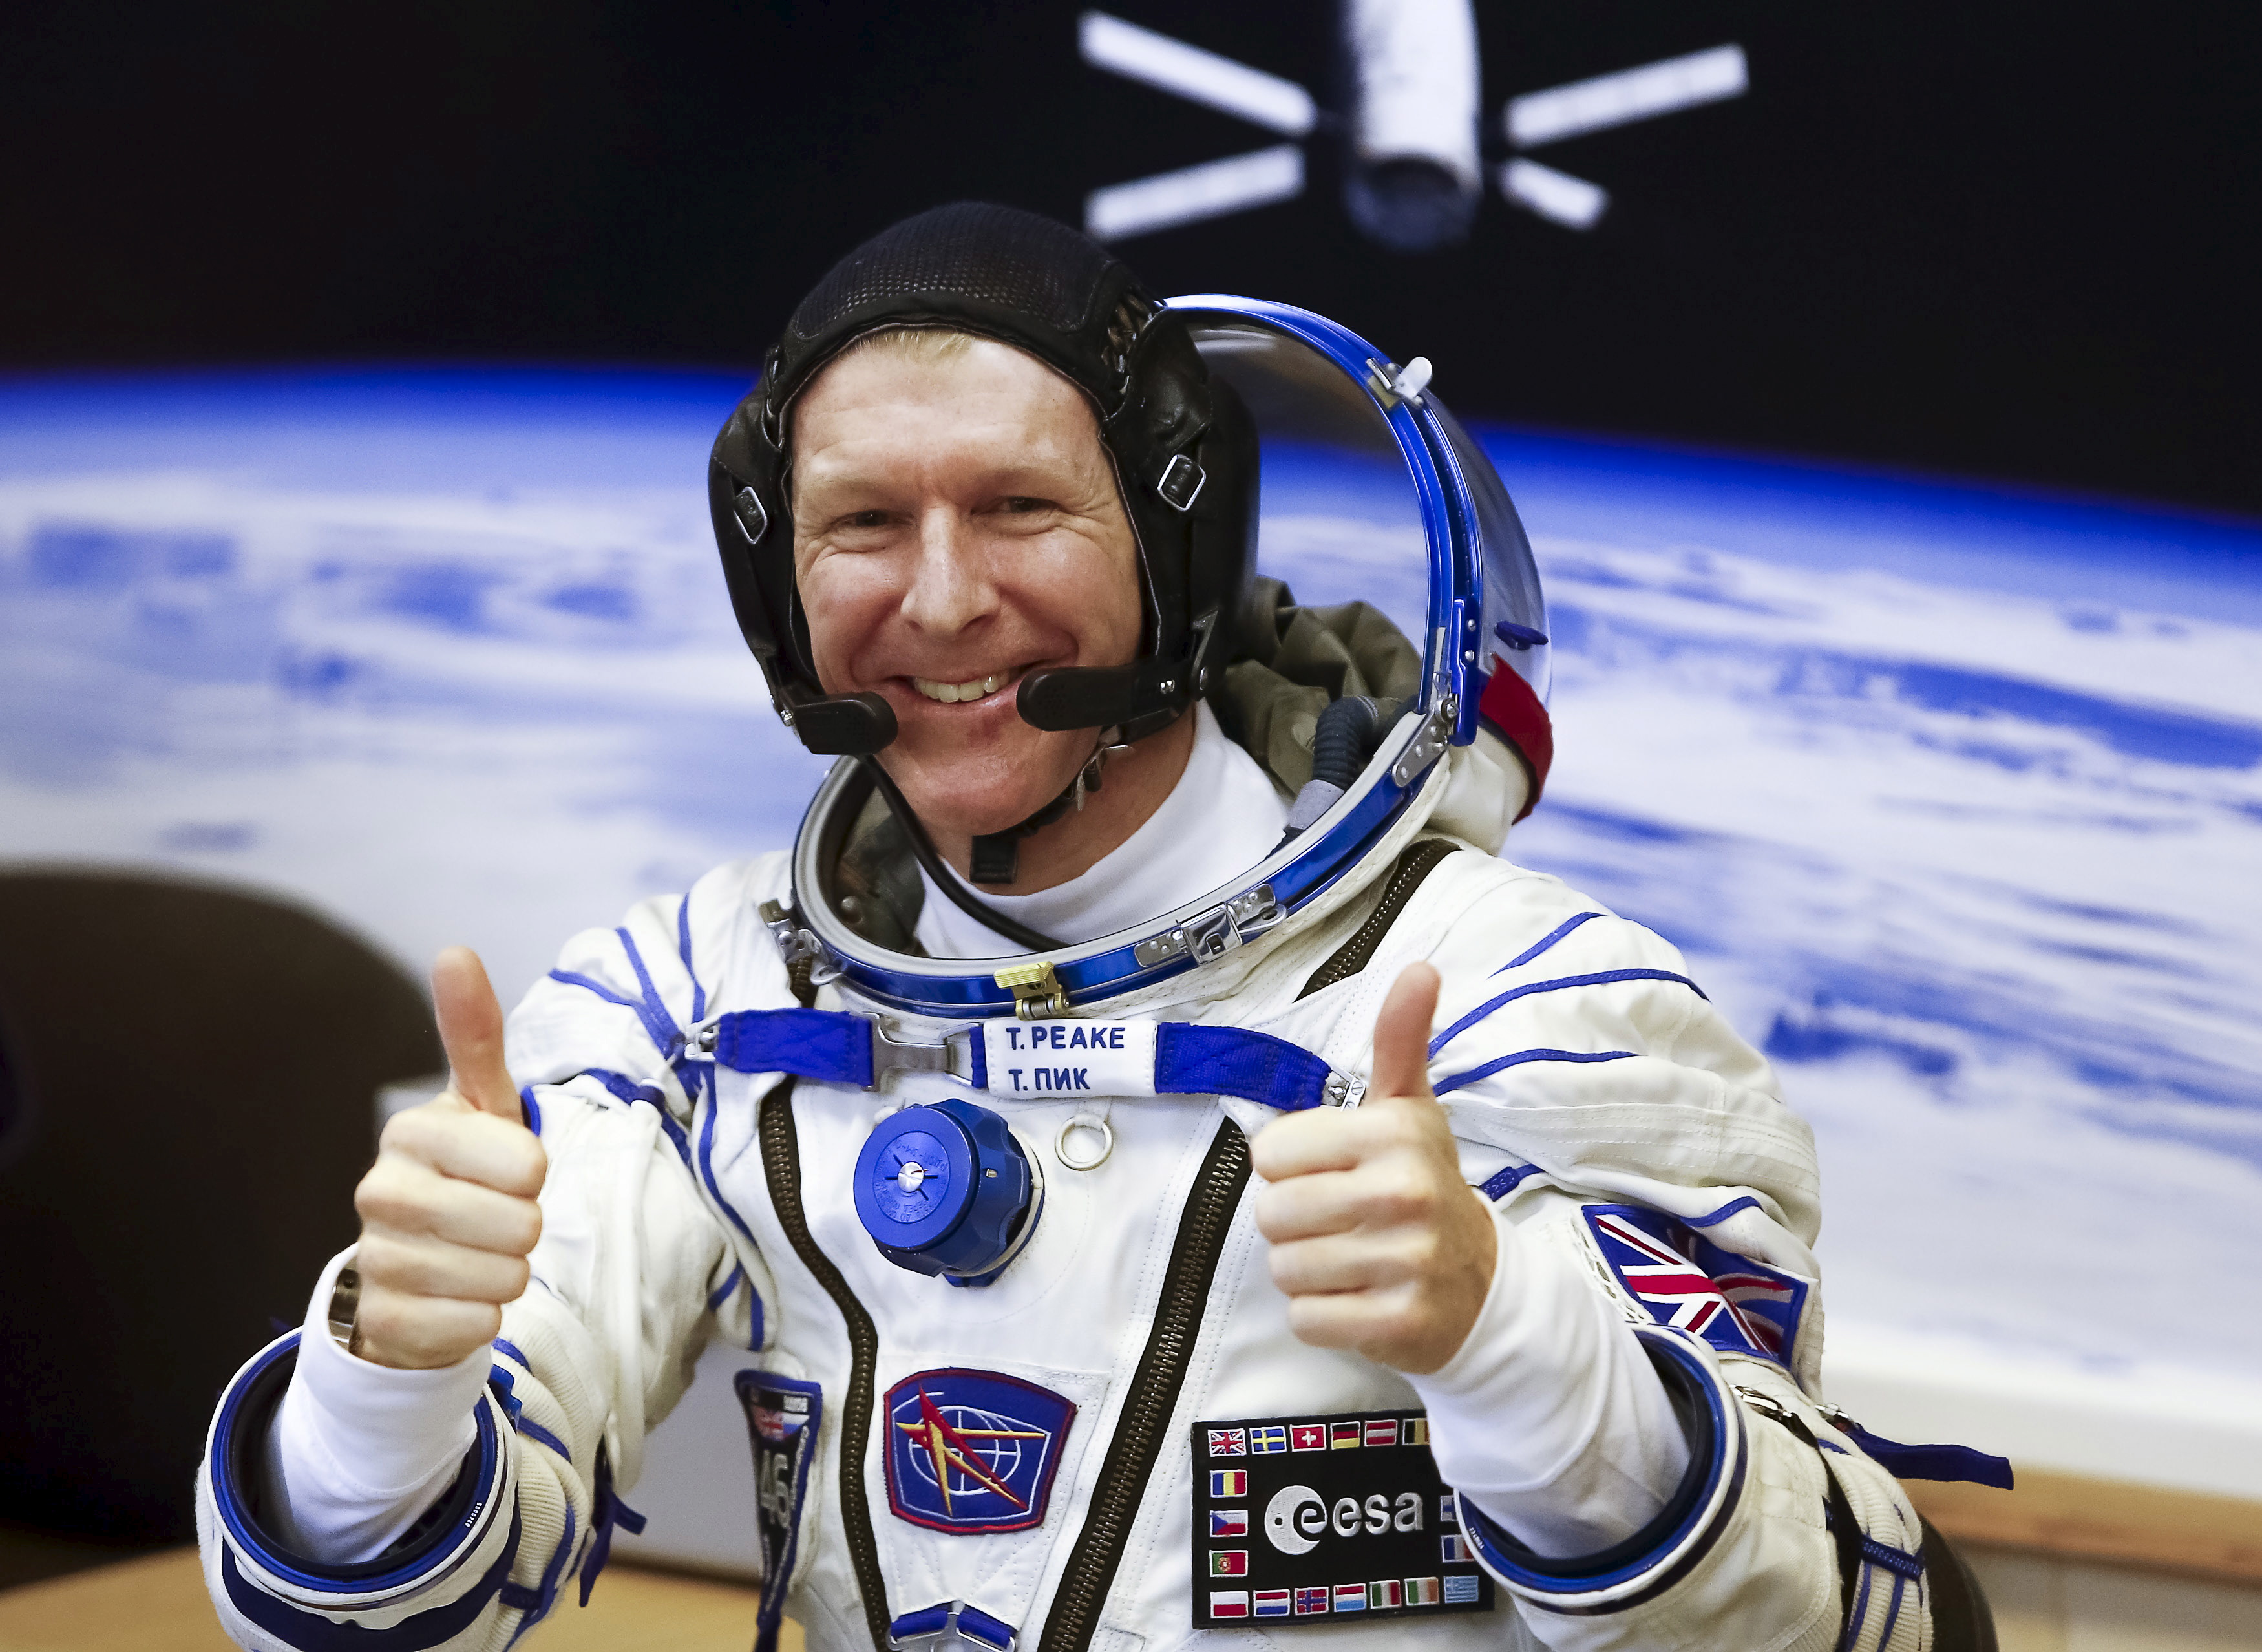 space astronauts thumbs up - photo #27